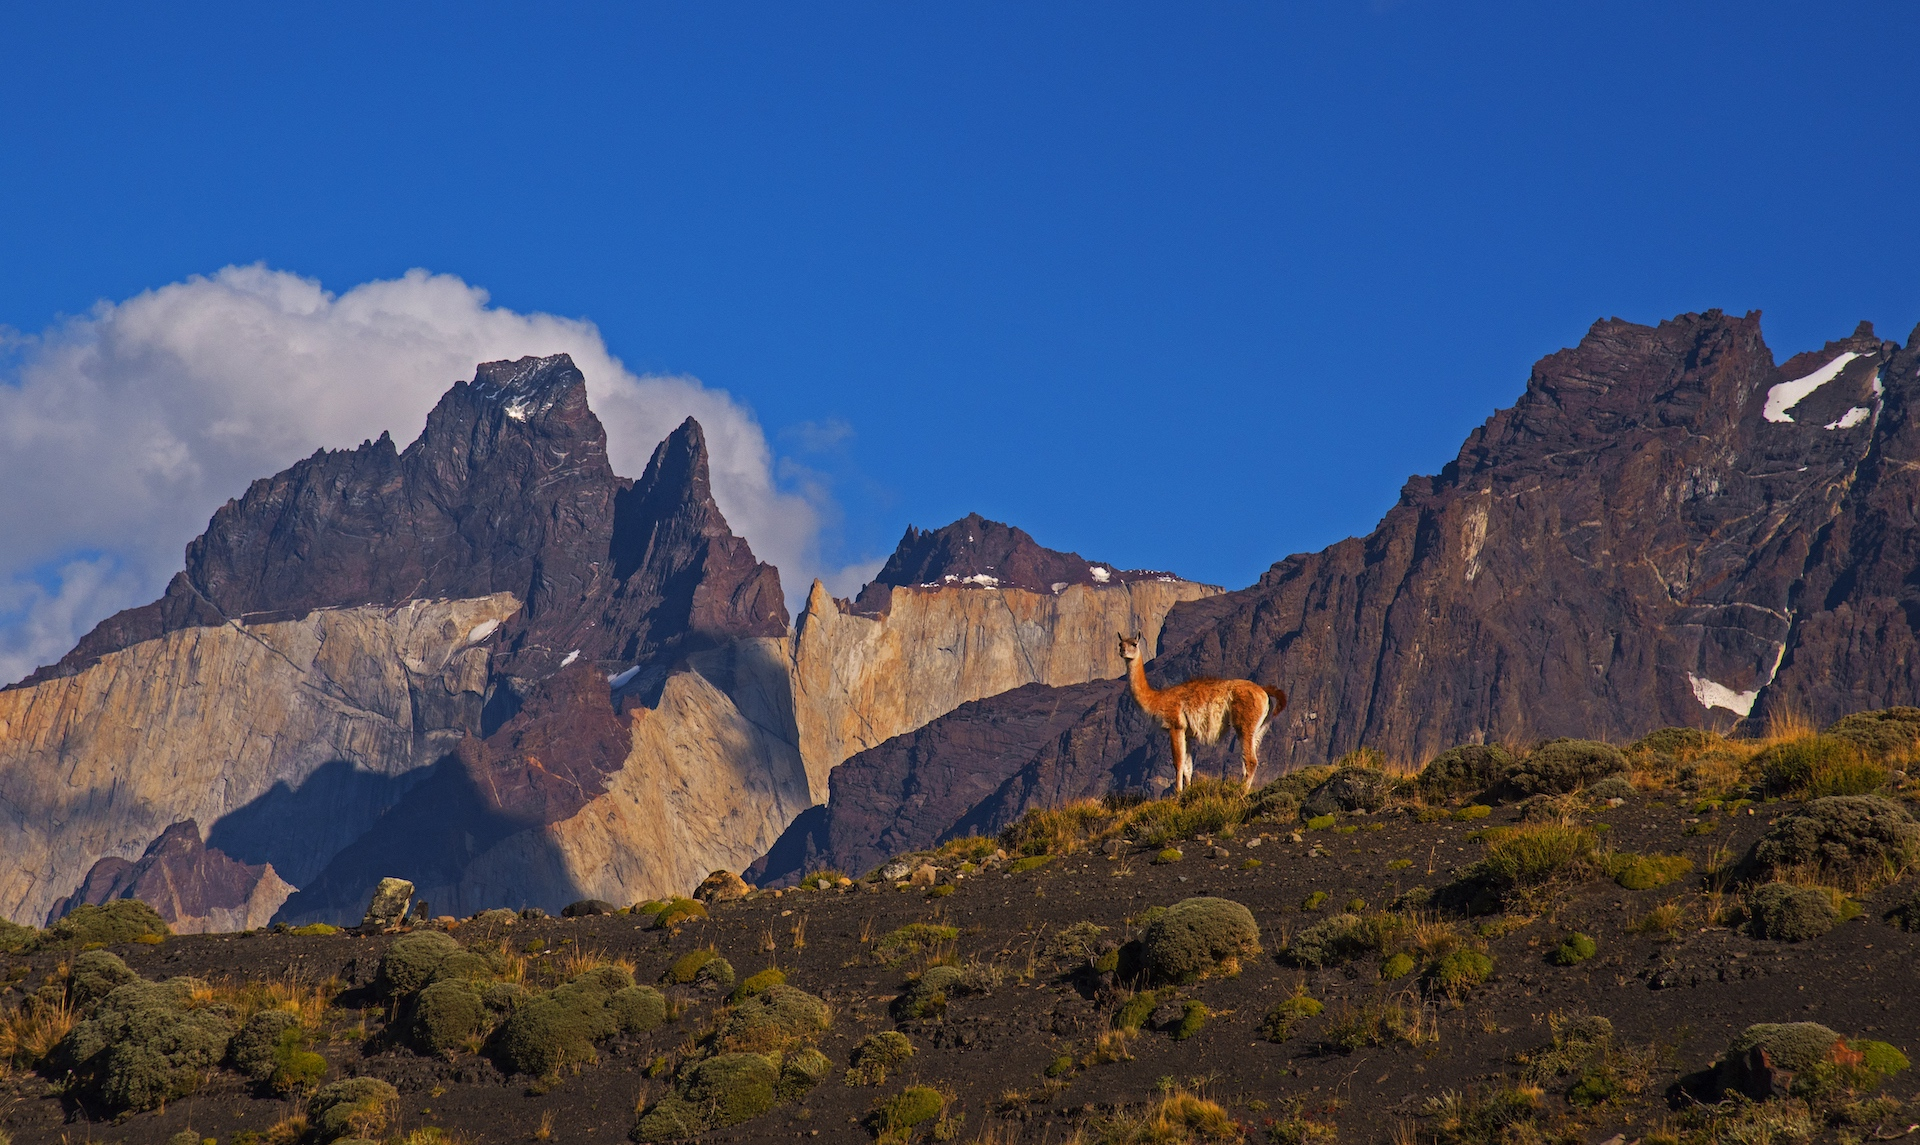 Early in the morning, a sentinel stands guarding its herd, with the sheer granite peaks and dark metamorphic rock of the Torres del Paine in the background. The leader of a pack may stand on guard on a high ledge or assign another member of the group the task. If danger is near, the sentinel's job is to let out a high-pitched shriek that gives the rest of the herd the signal to flee.